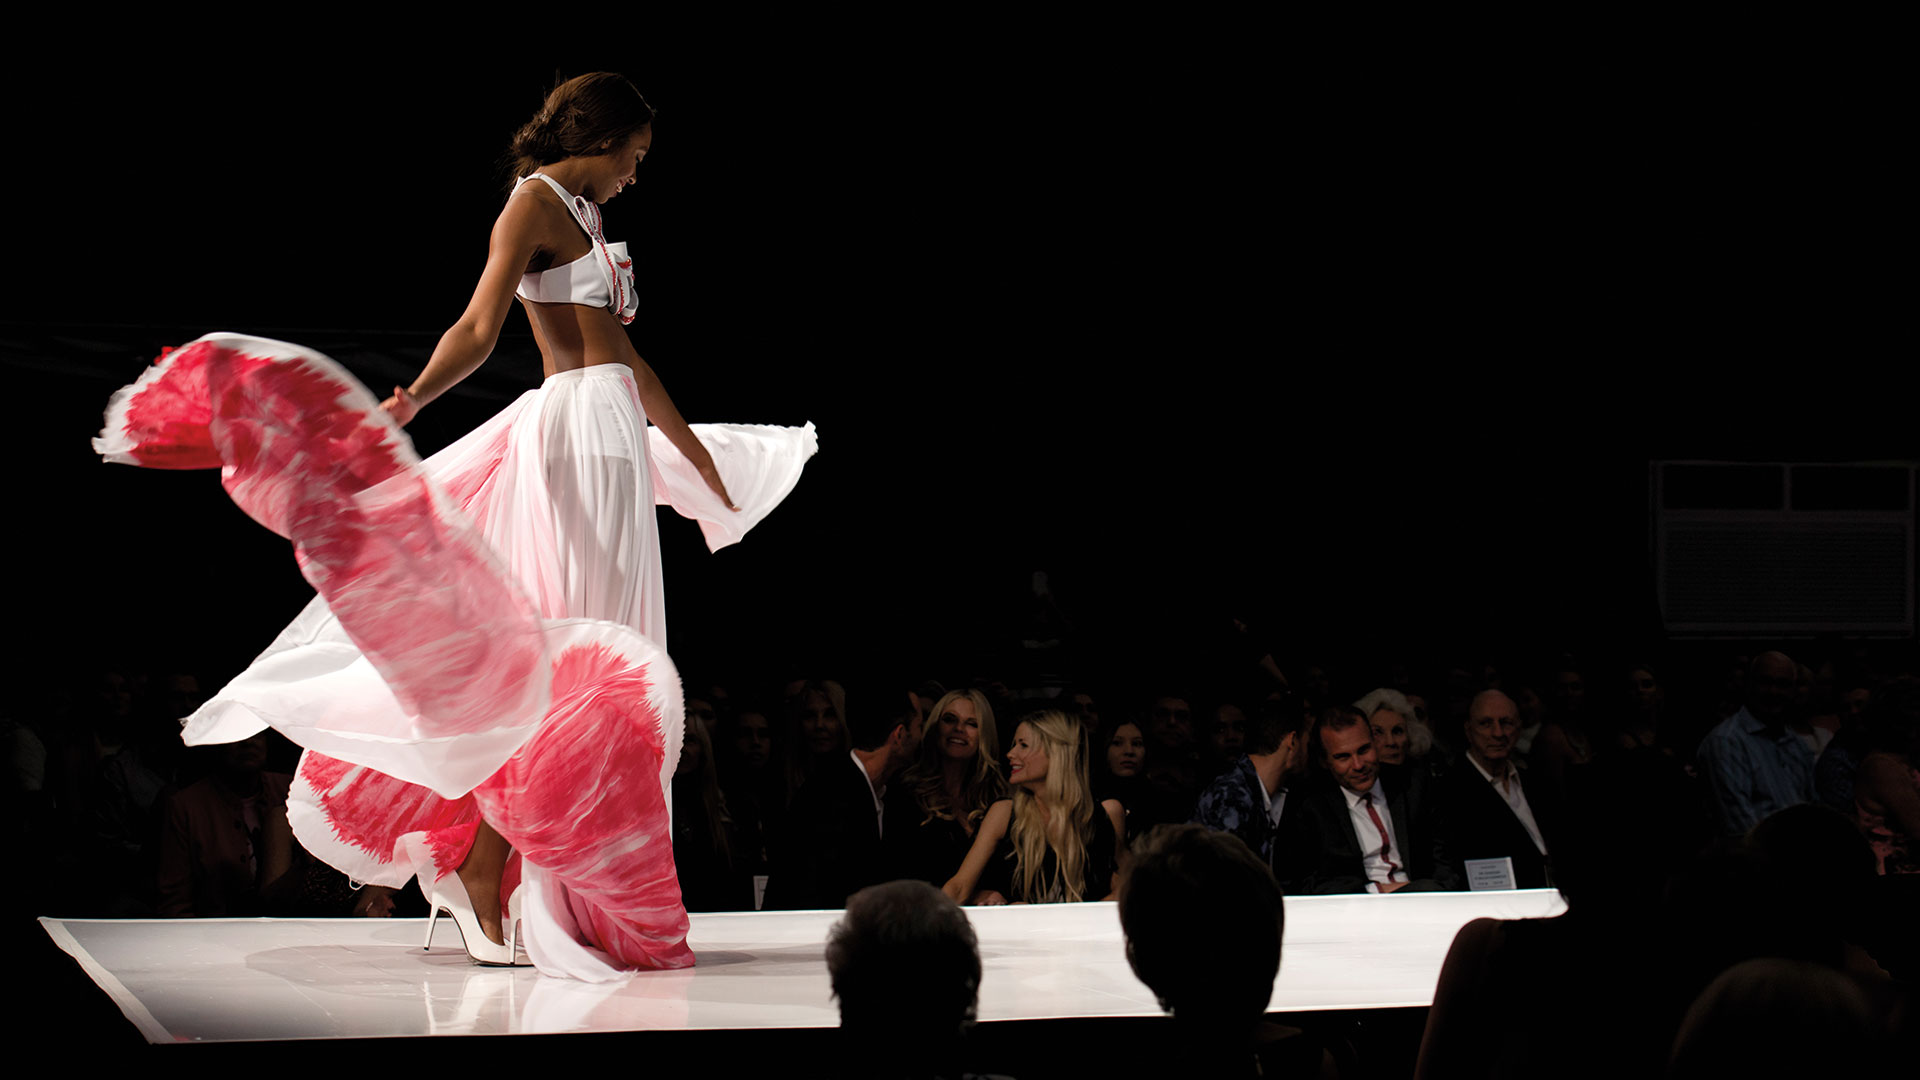 designs on the runway during fashion week el paseo